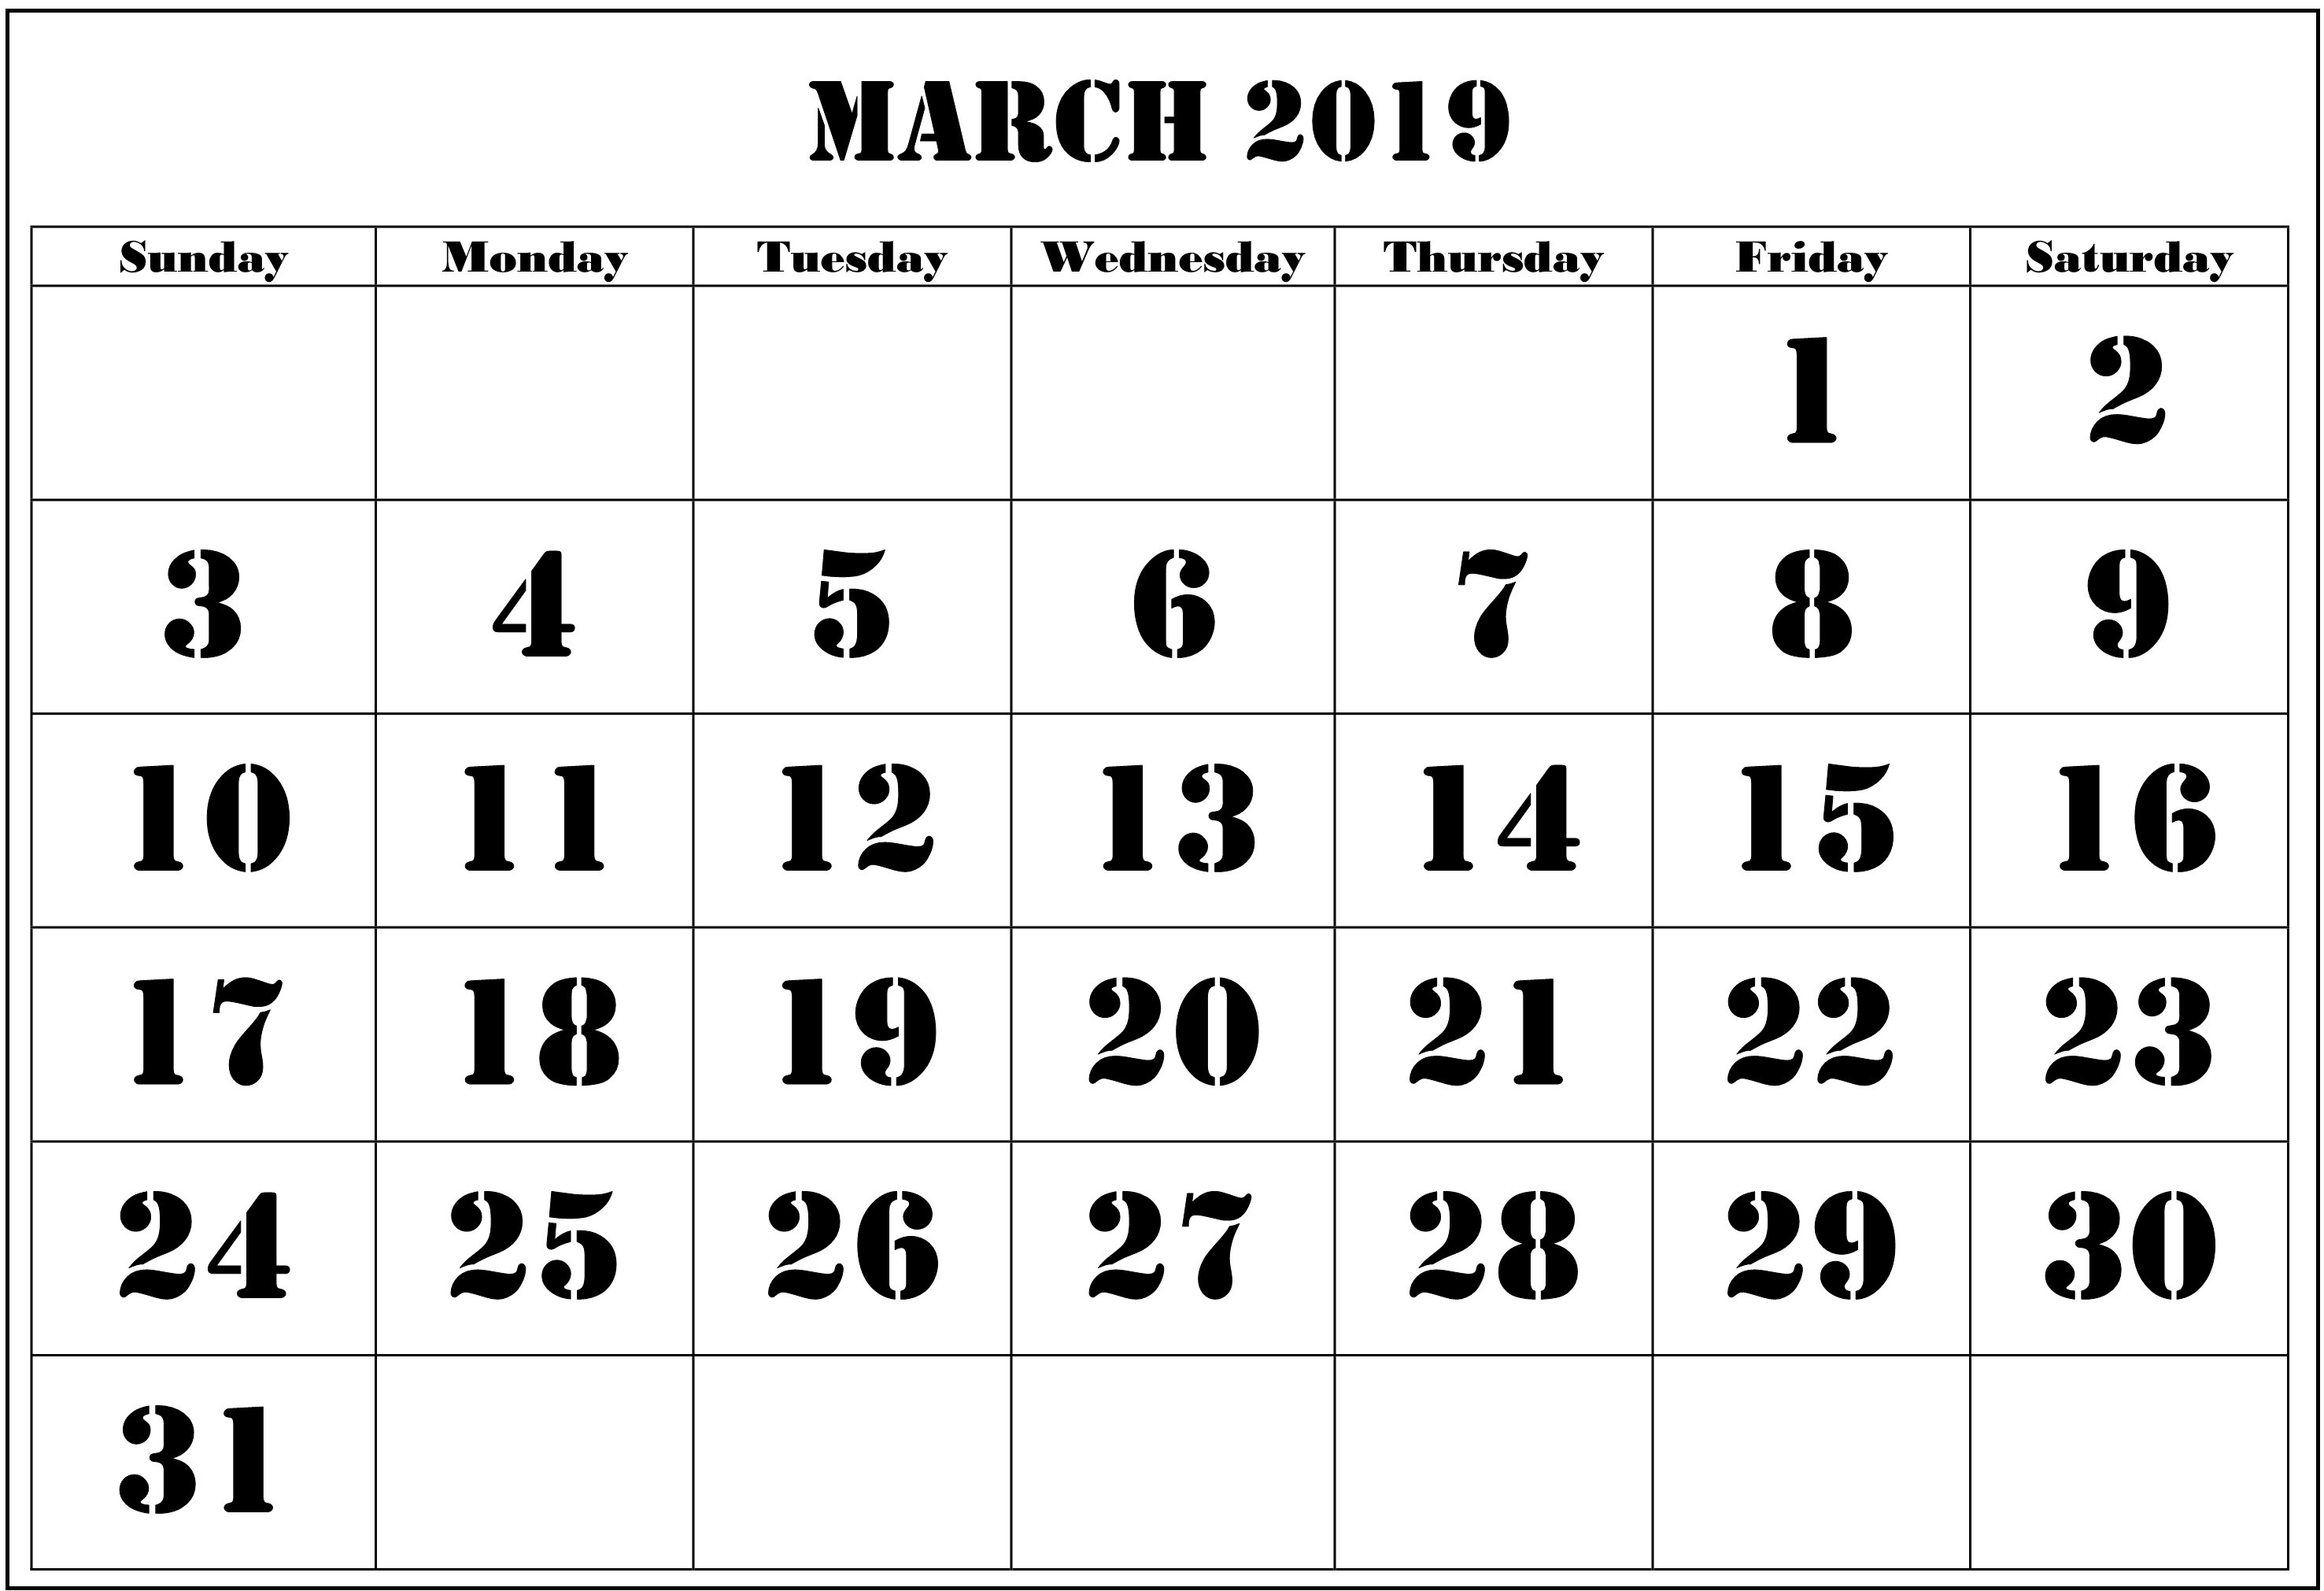 March Calendar 2019 Más Recientes March 2019 Calendar In Pdf Word Excel Printable Template Of March Calendar 2019 Más Populares February March Calendar 2019 2018 Printable Calendar Store